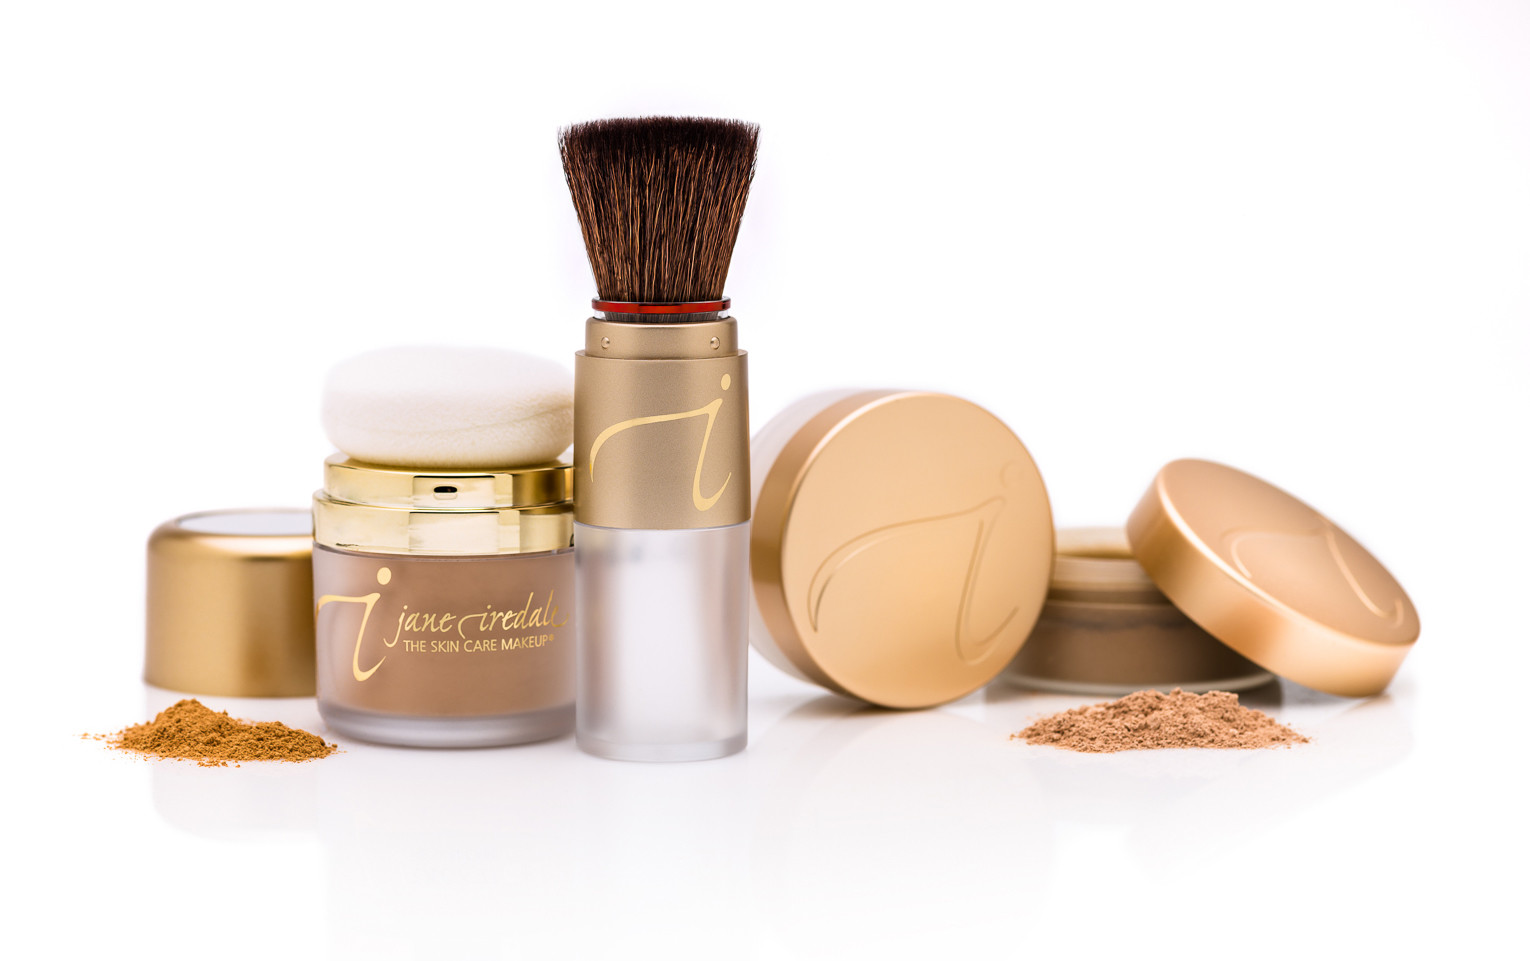 Jane Iredale Mineral Makeup - Liebe Aesthetics